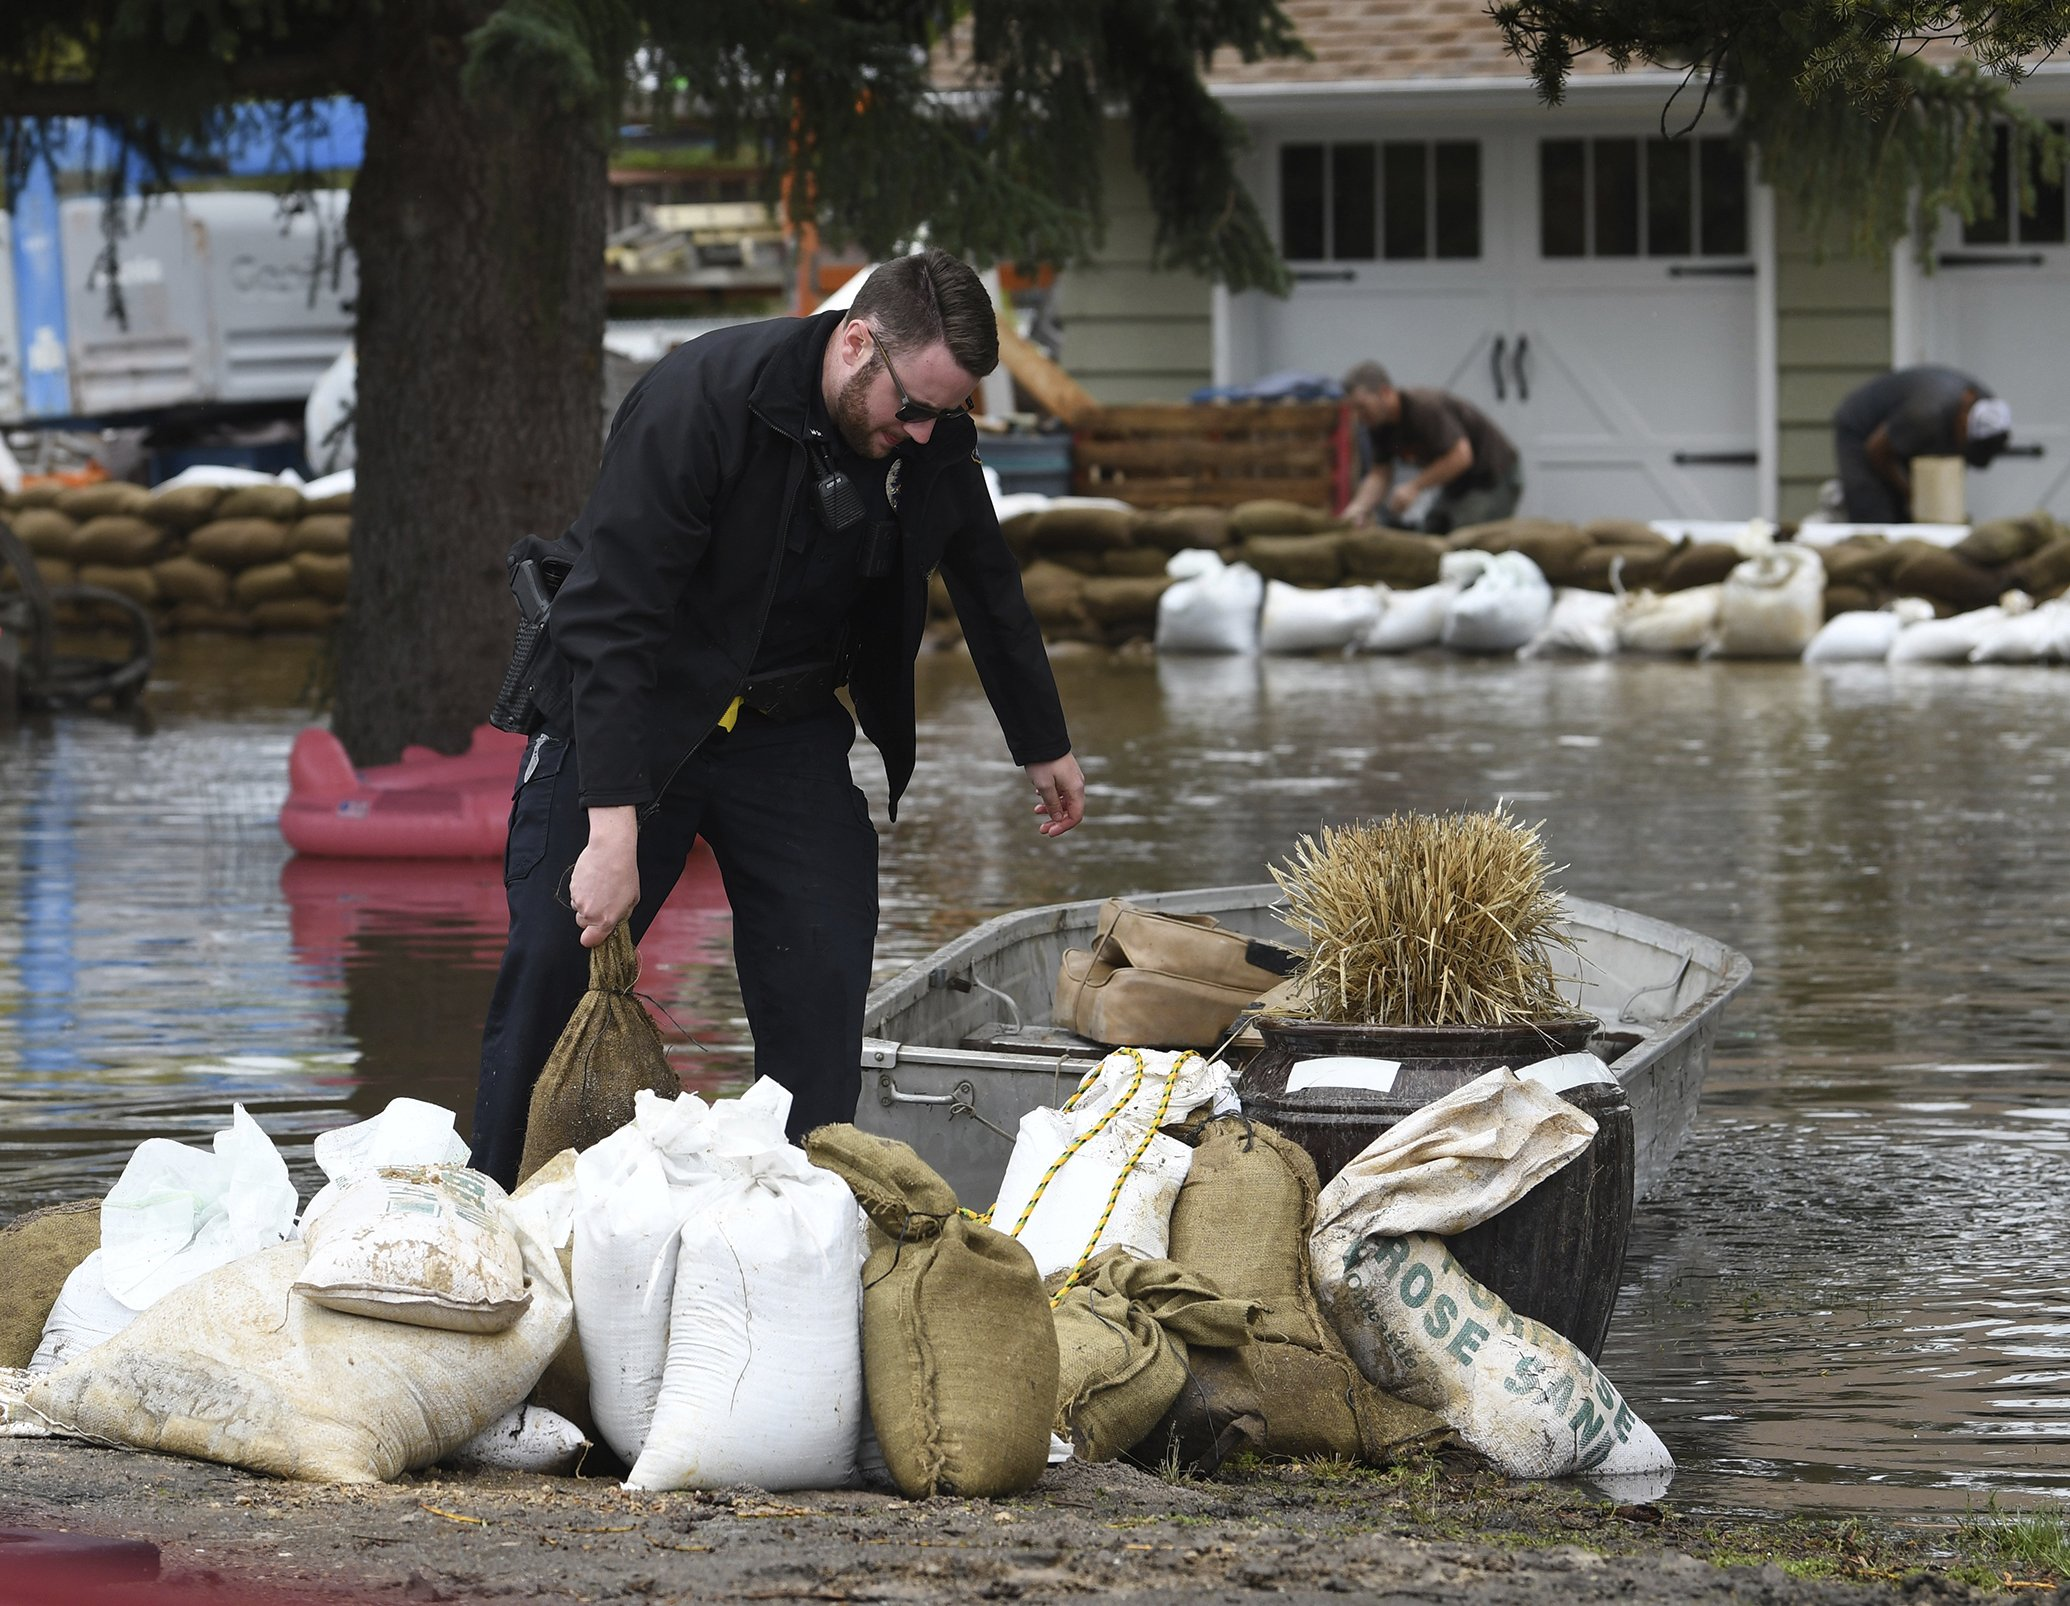 Montana floodwaters near highest level in 100 years